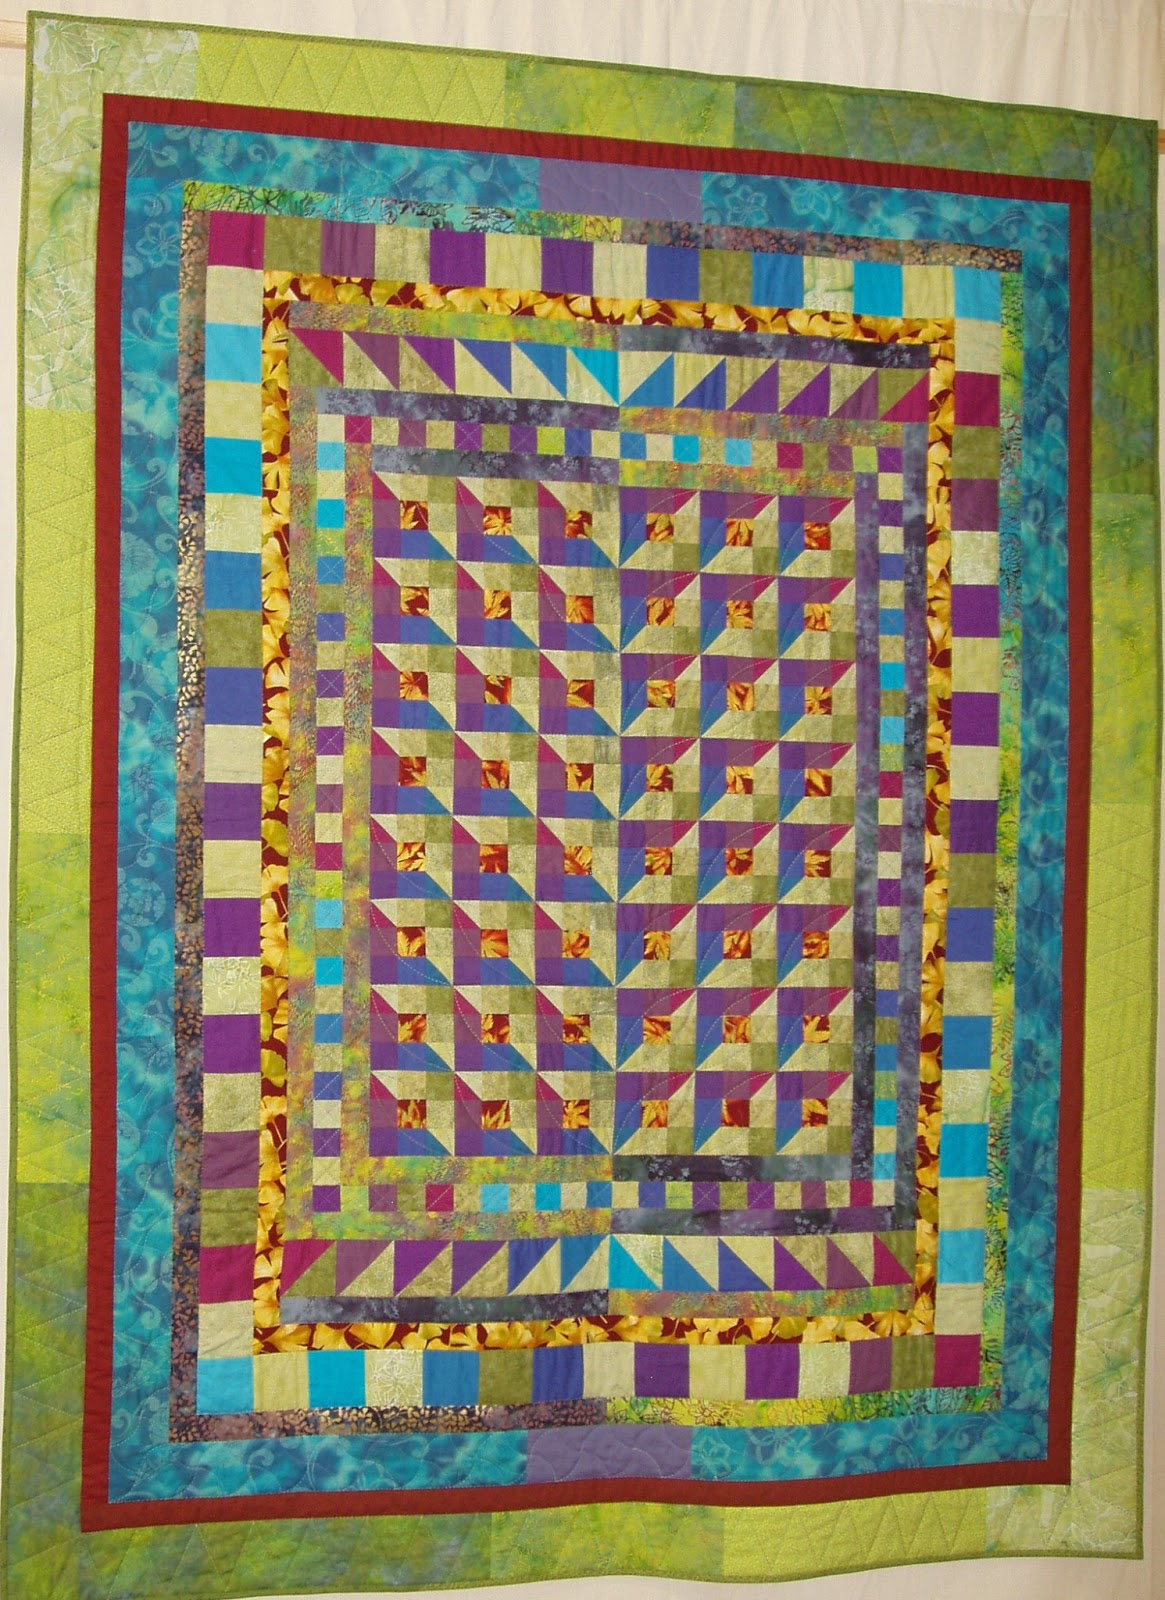 Sashiko And Other Stitching Garden Party Quilt In Popular